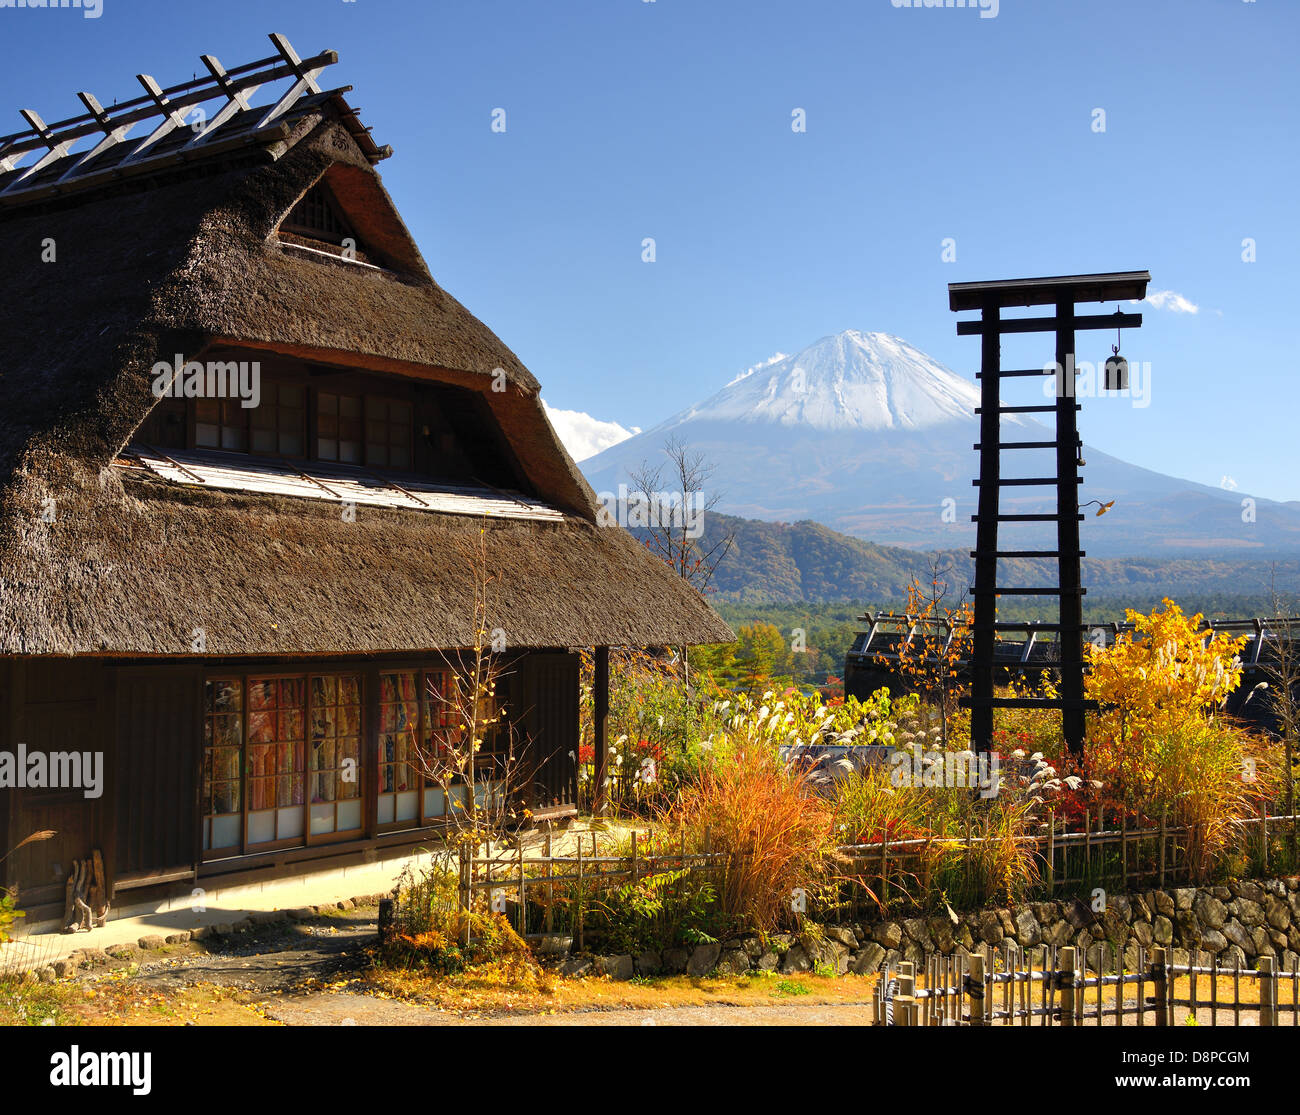 Historic Japanese huts in Kawaguchi, Japan with Mt Fuji Visible in the distance. - Stock Image